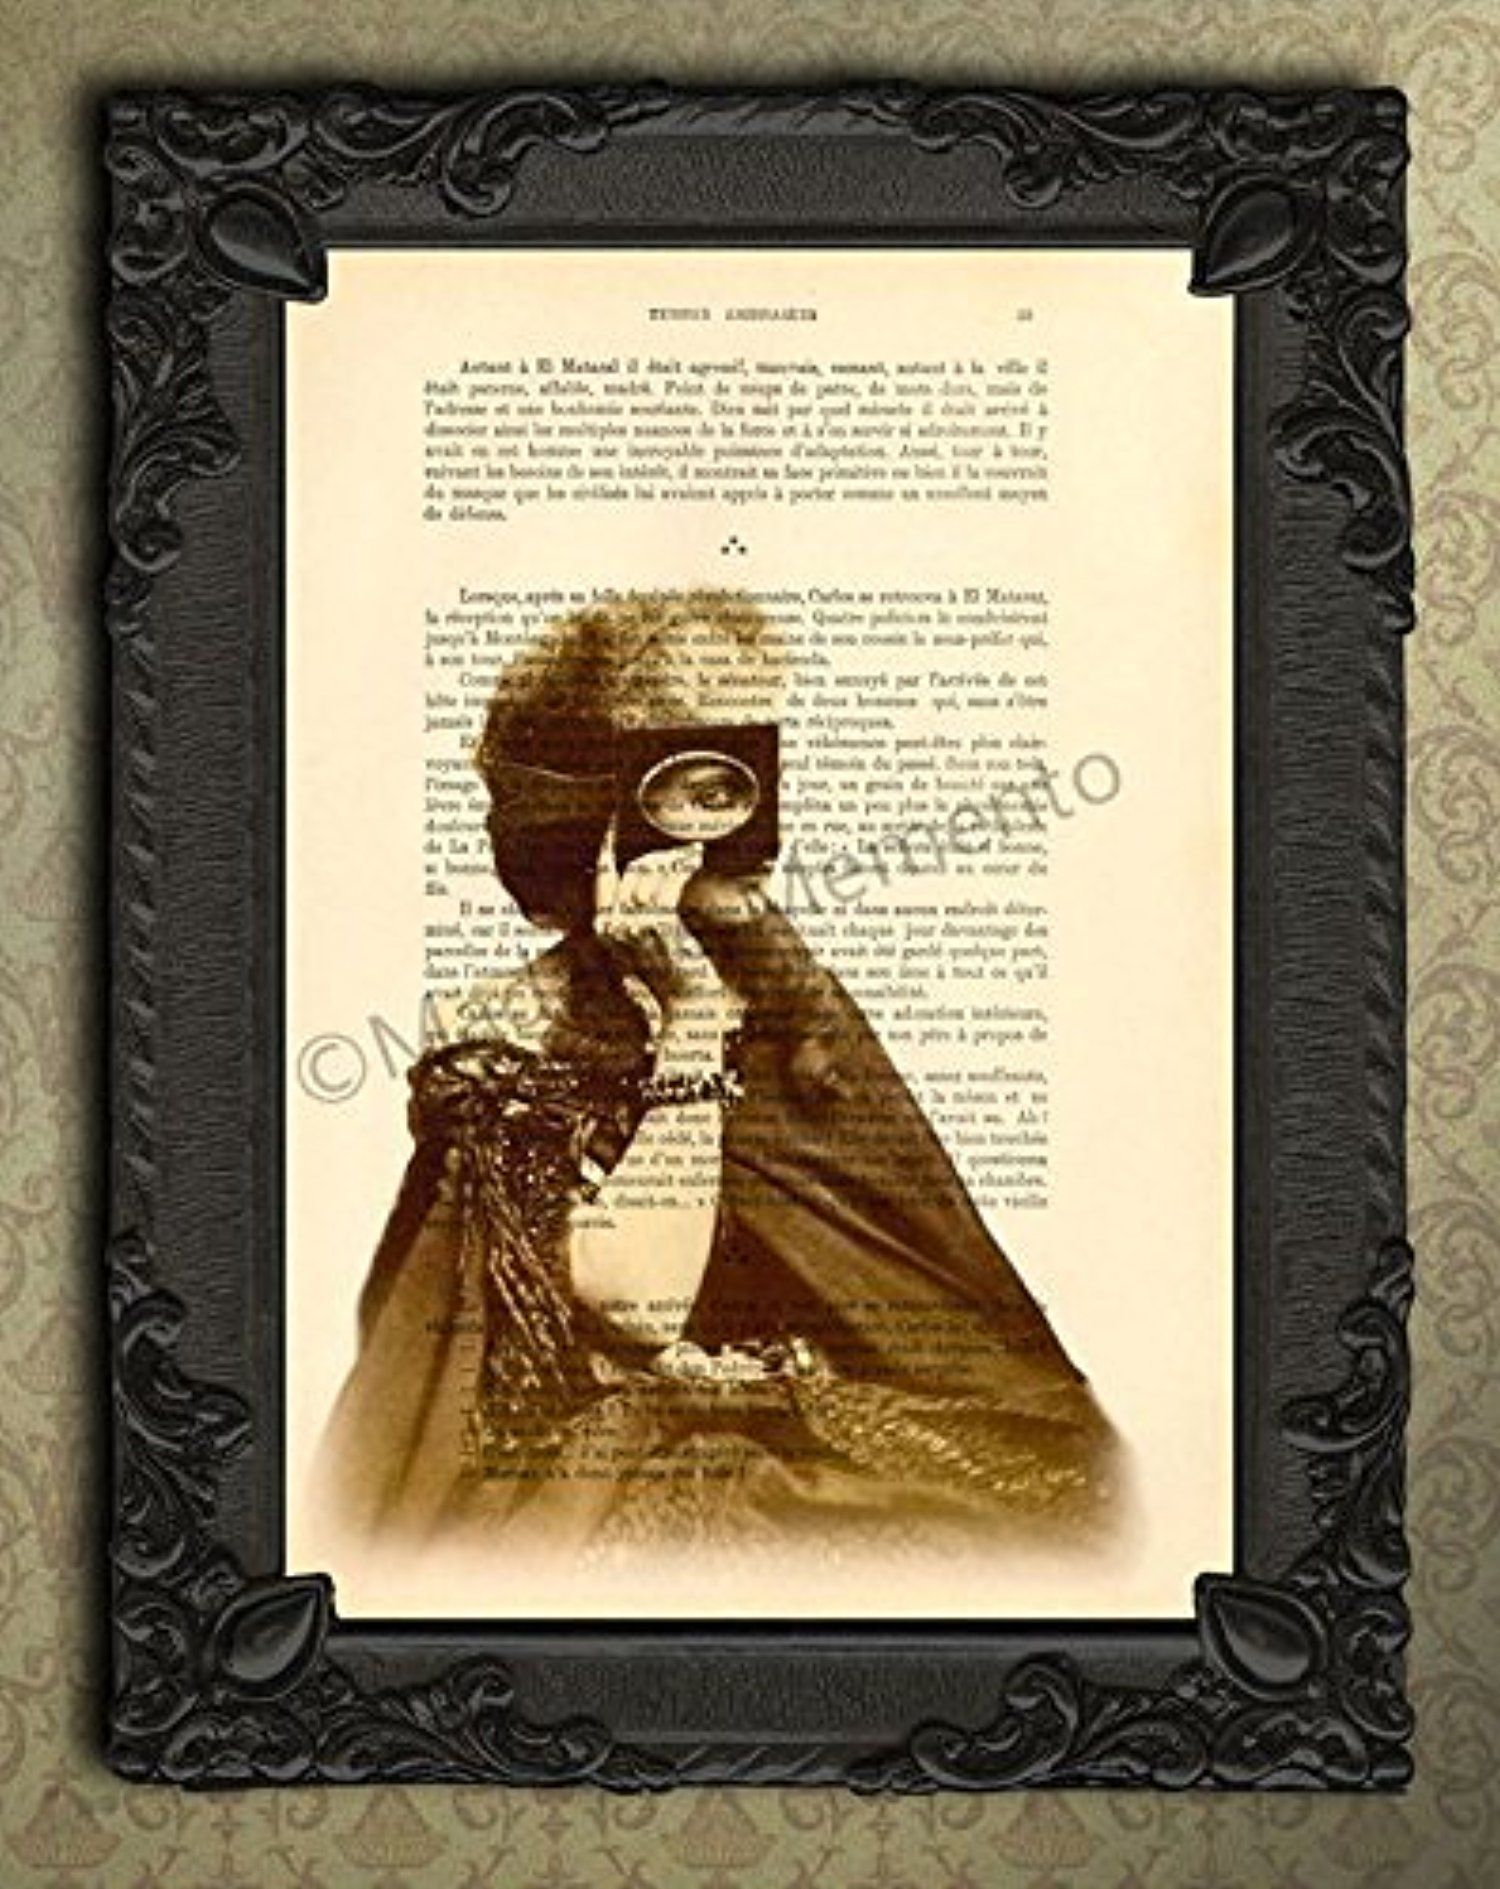 Victorian countess of Castiglione art print, antique photograph on original book page, sepia home decor -- Awesome products selected by Anna Churchill